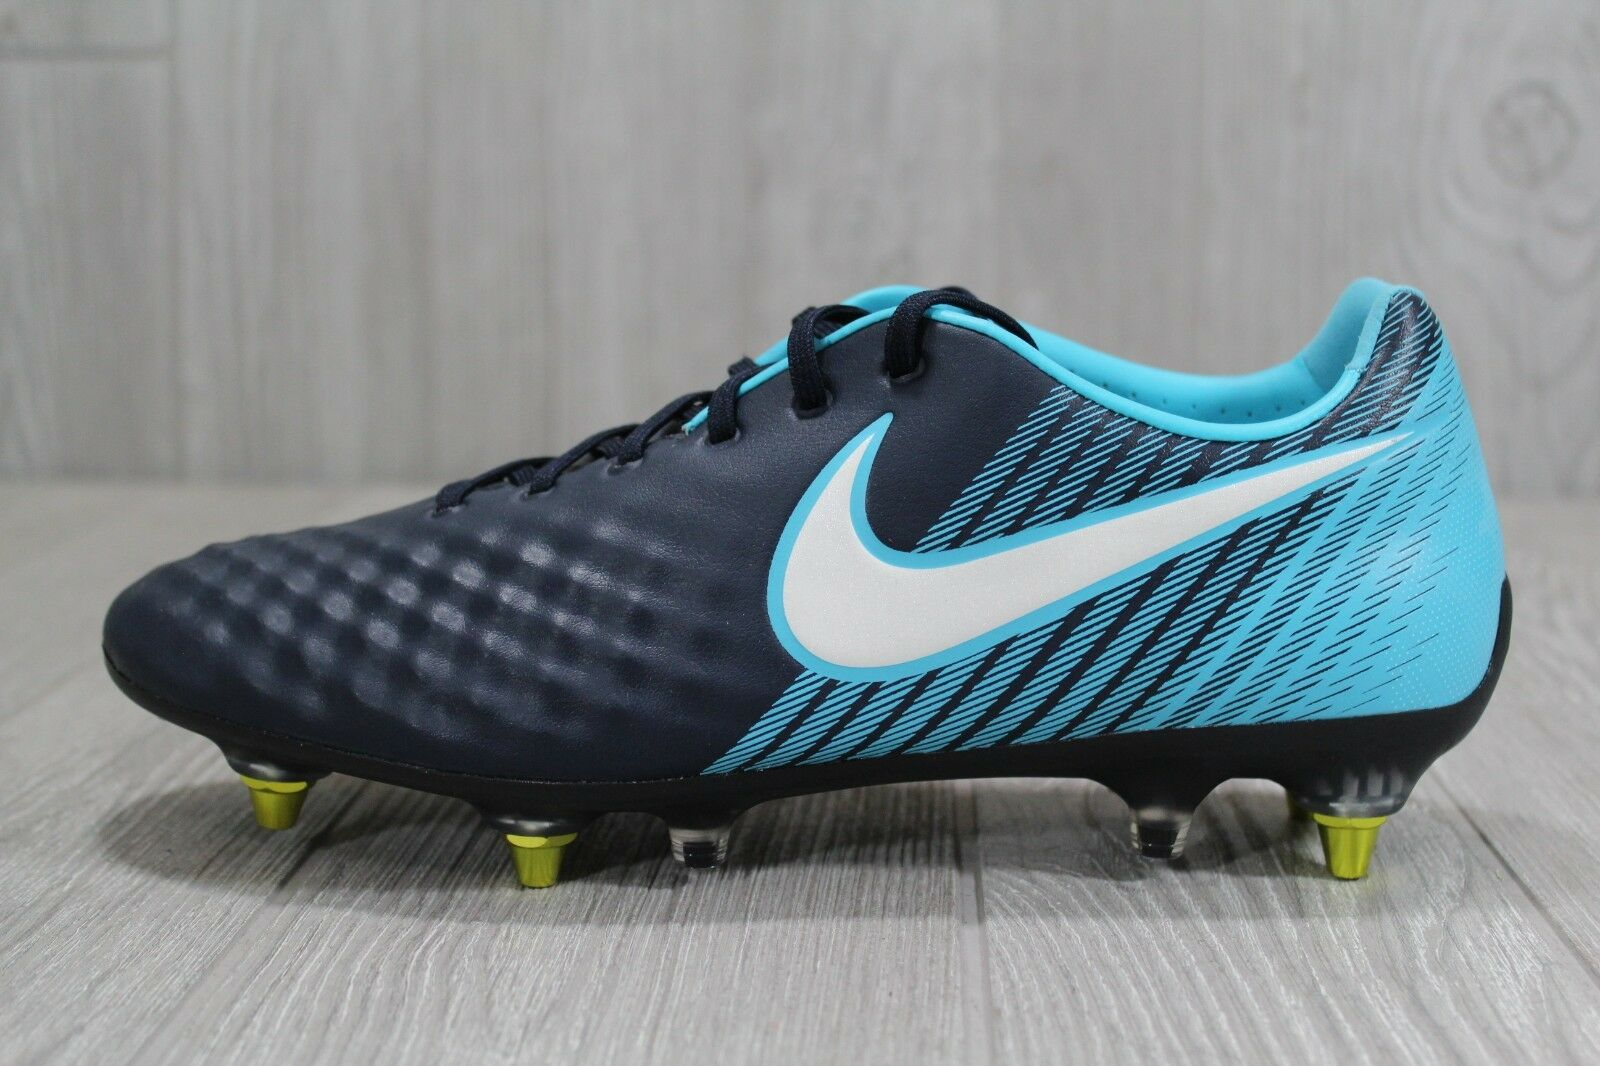 38 Nike Magista Opus II SG-PRO AC Anti Clog Soccer Cleats bluee US 9 889254-415